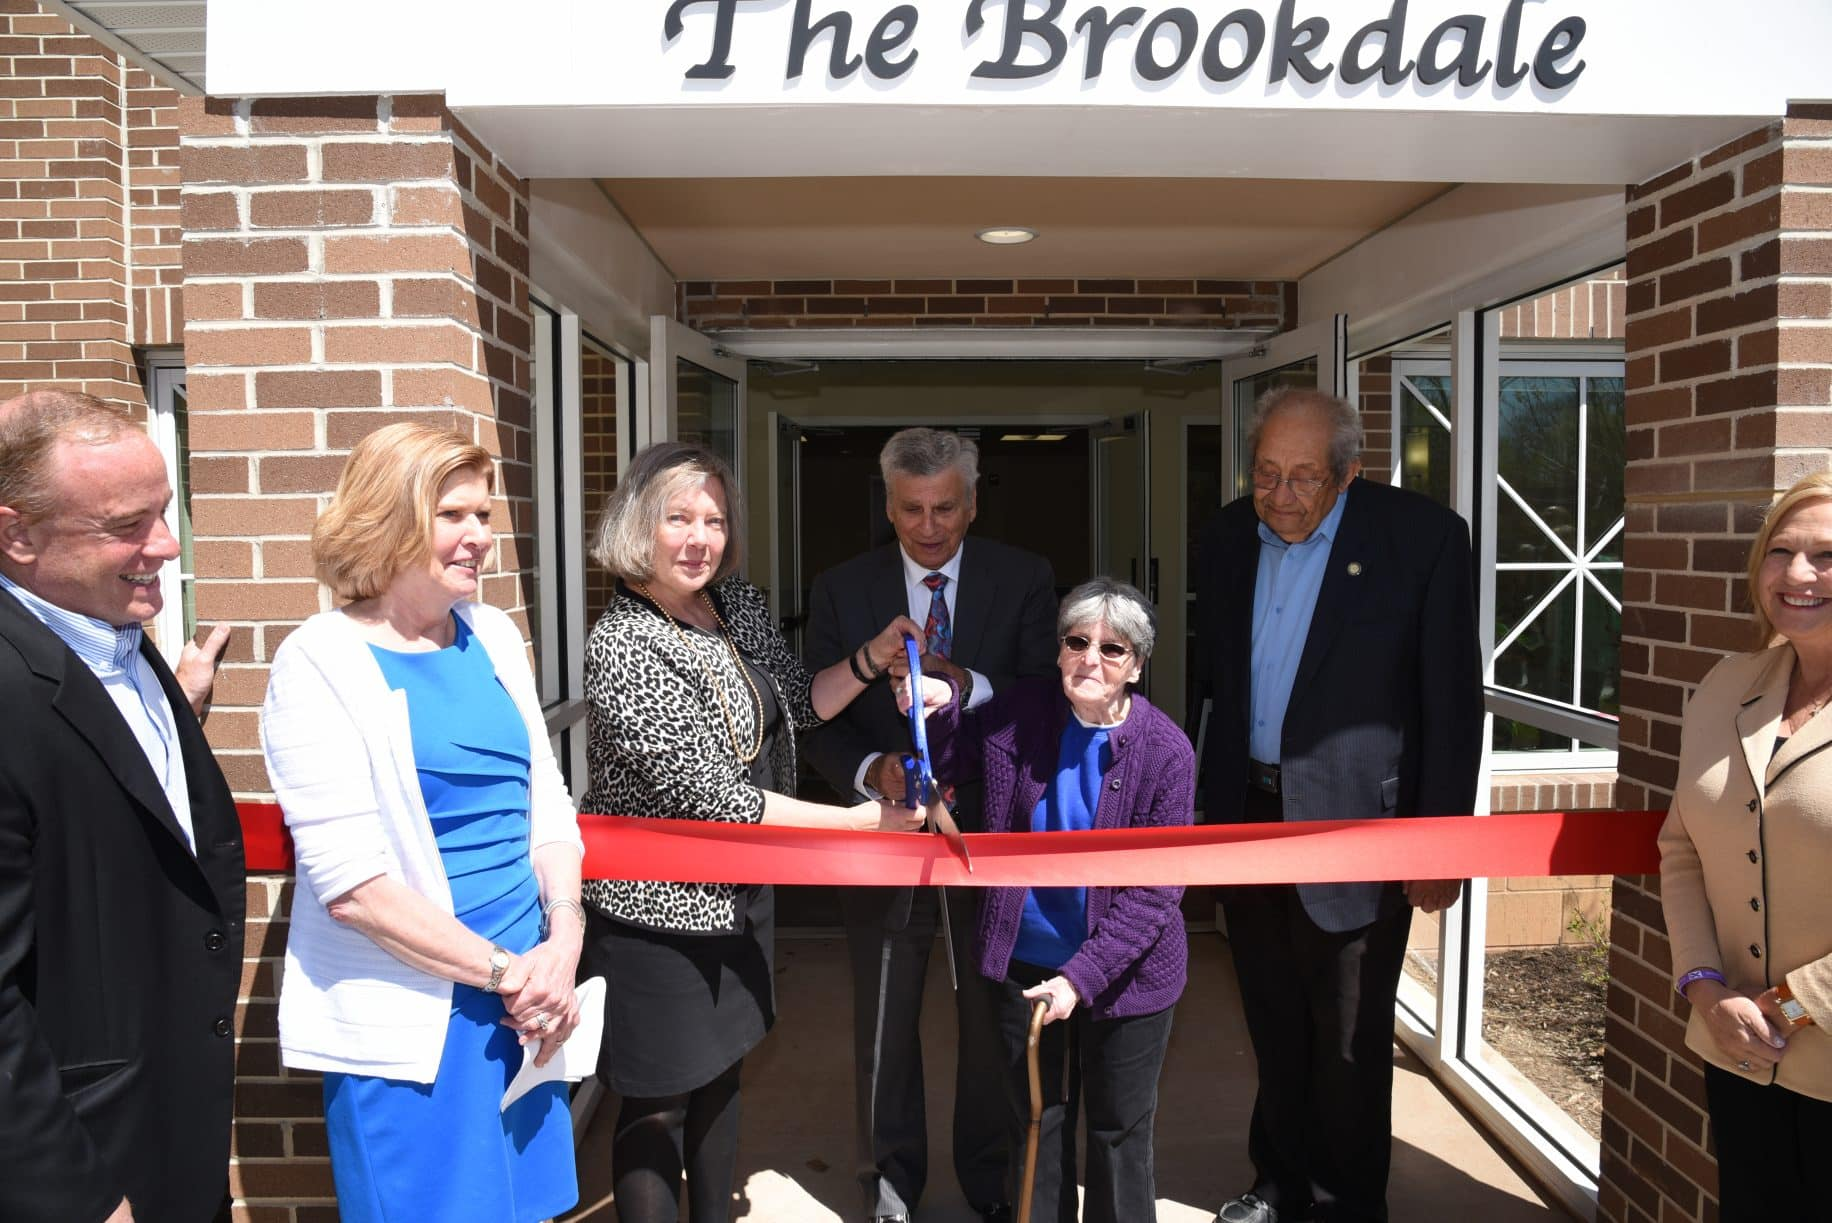 ribbon cutting held for brookdale senior housing in teaneck